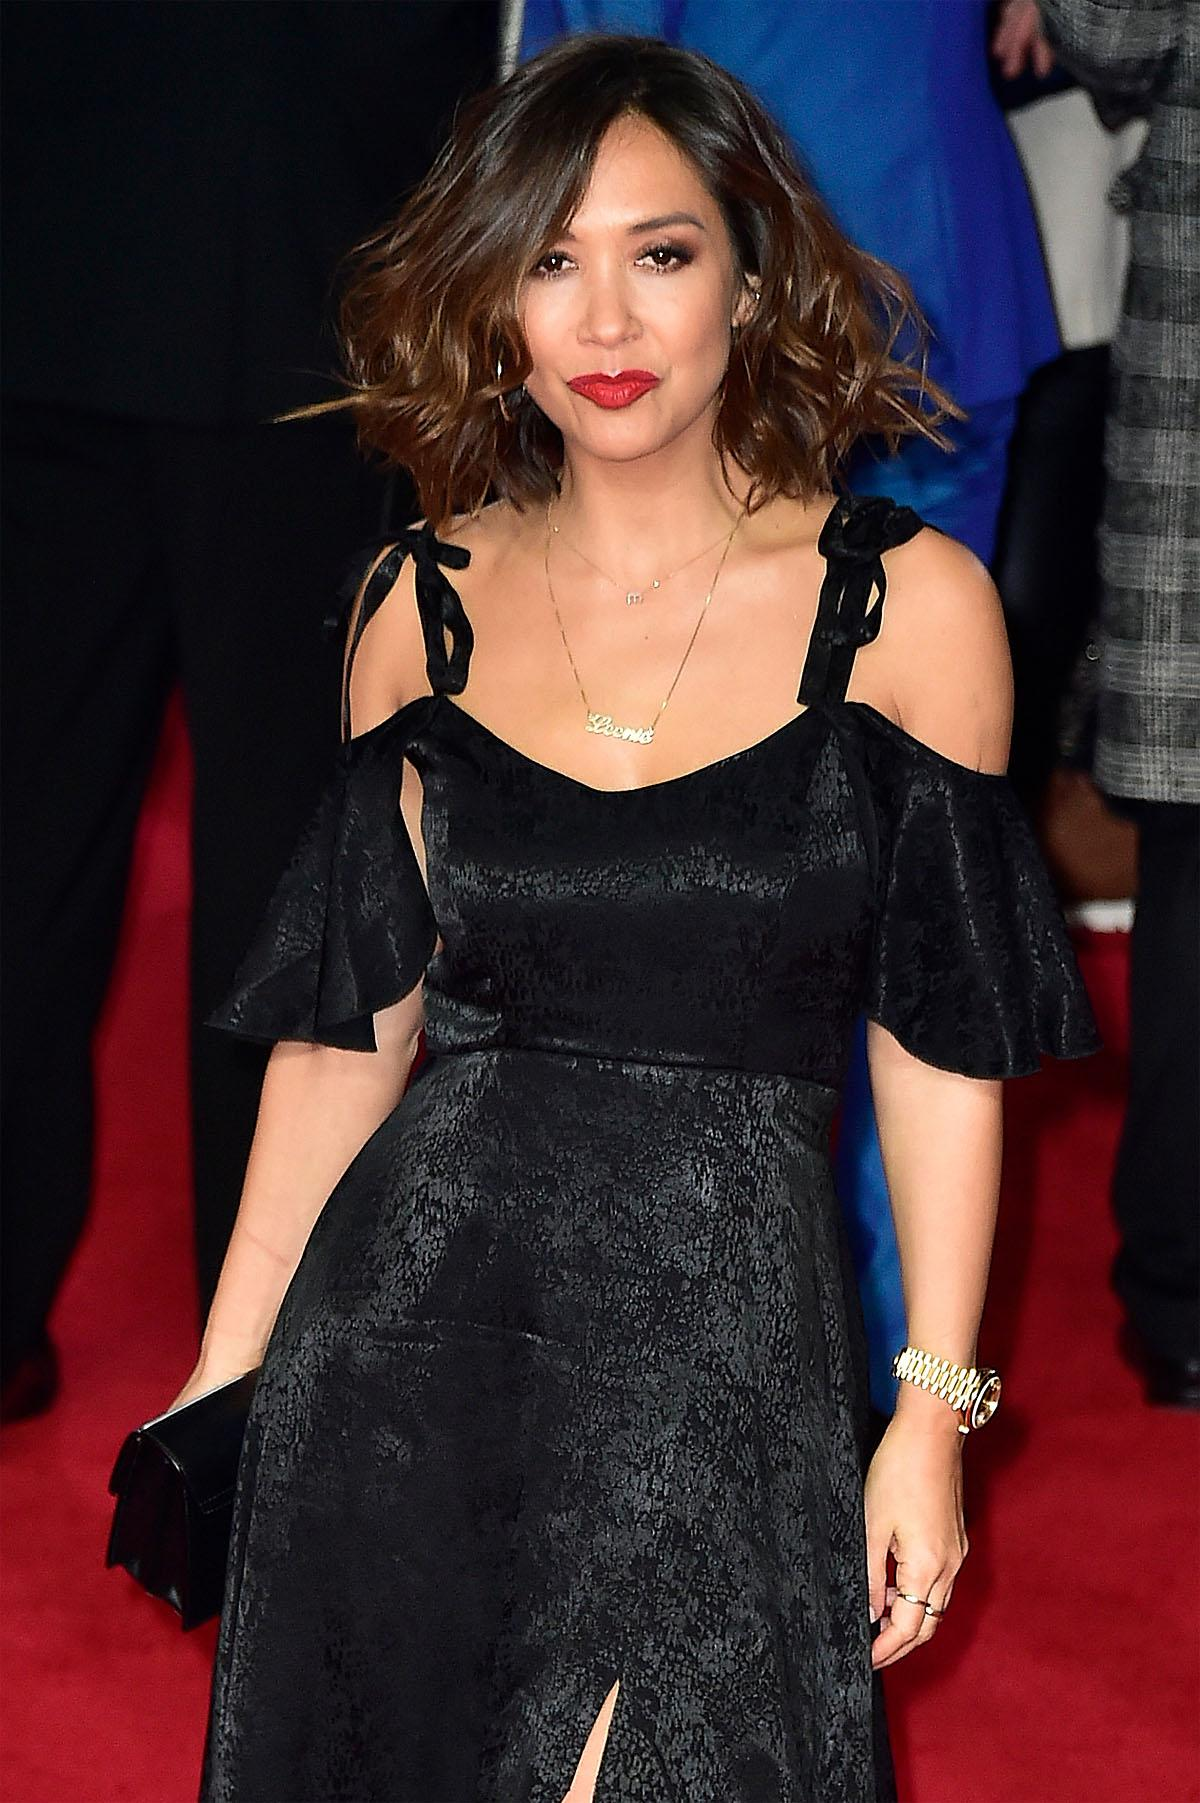 Celebs and cast attend the UK premiere of Star Wars the Last Jedi.  Featuring: Myleene Klass Where: London, United Kingdom When: 12 Dec 2017 Credit: WENN